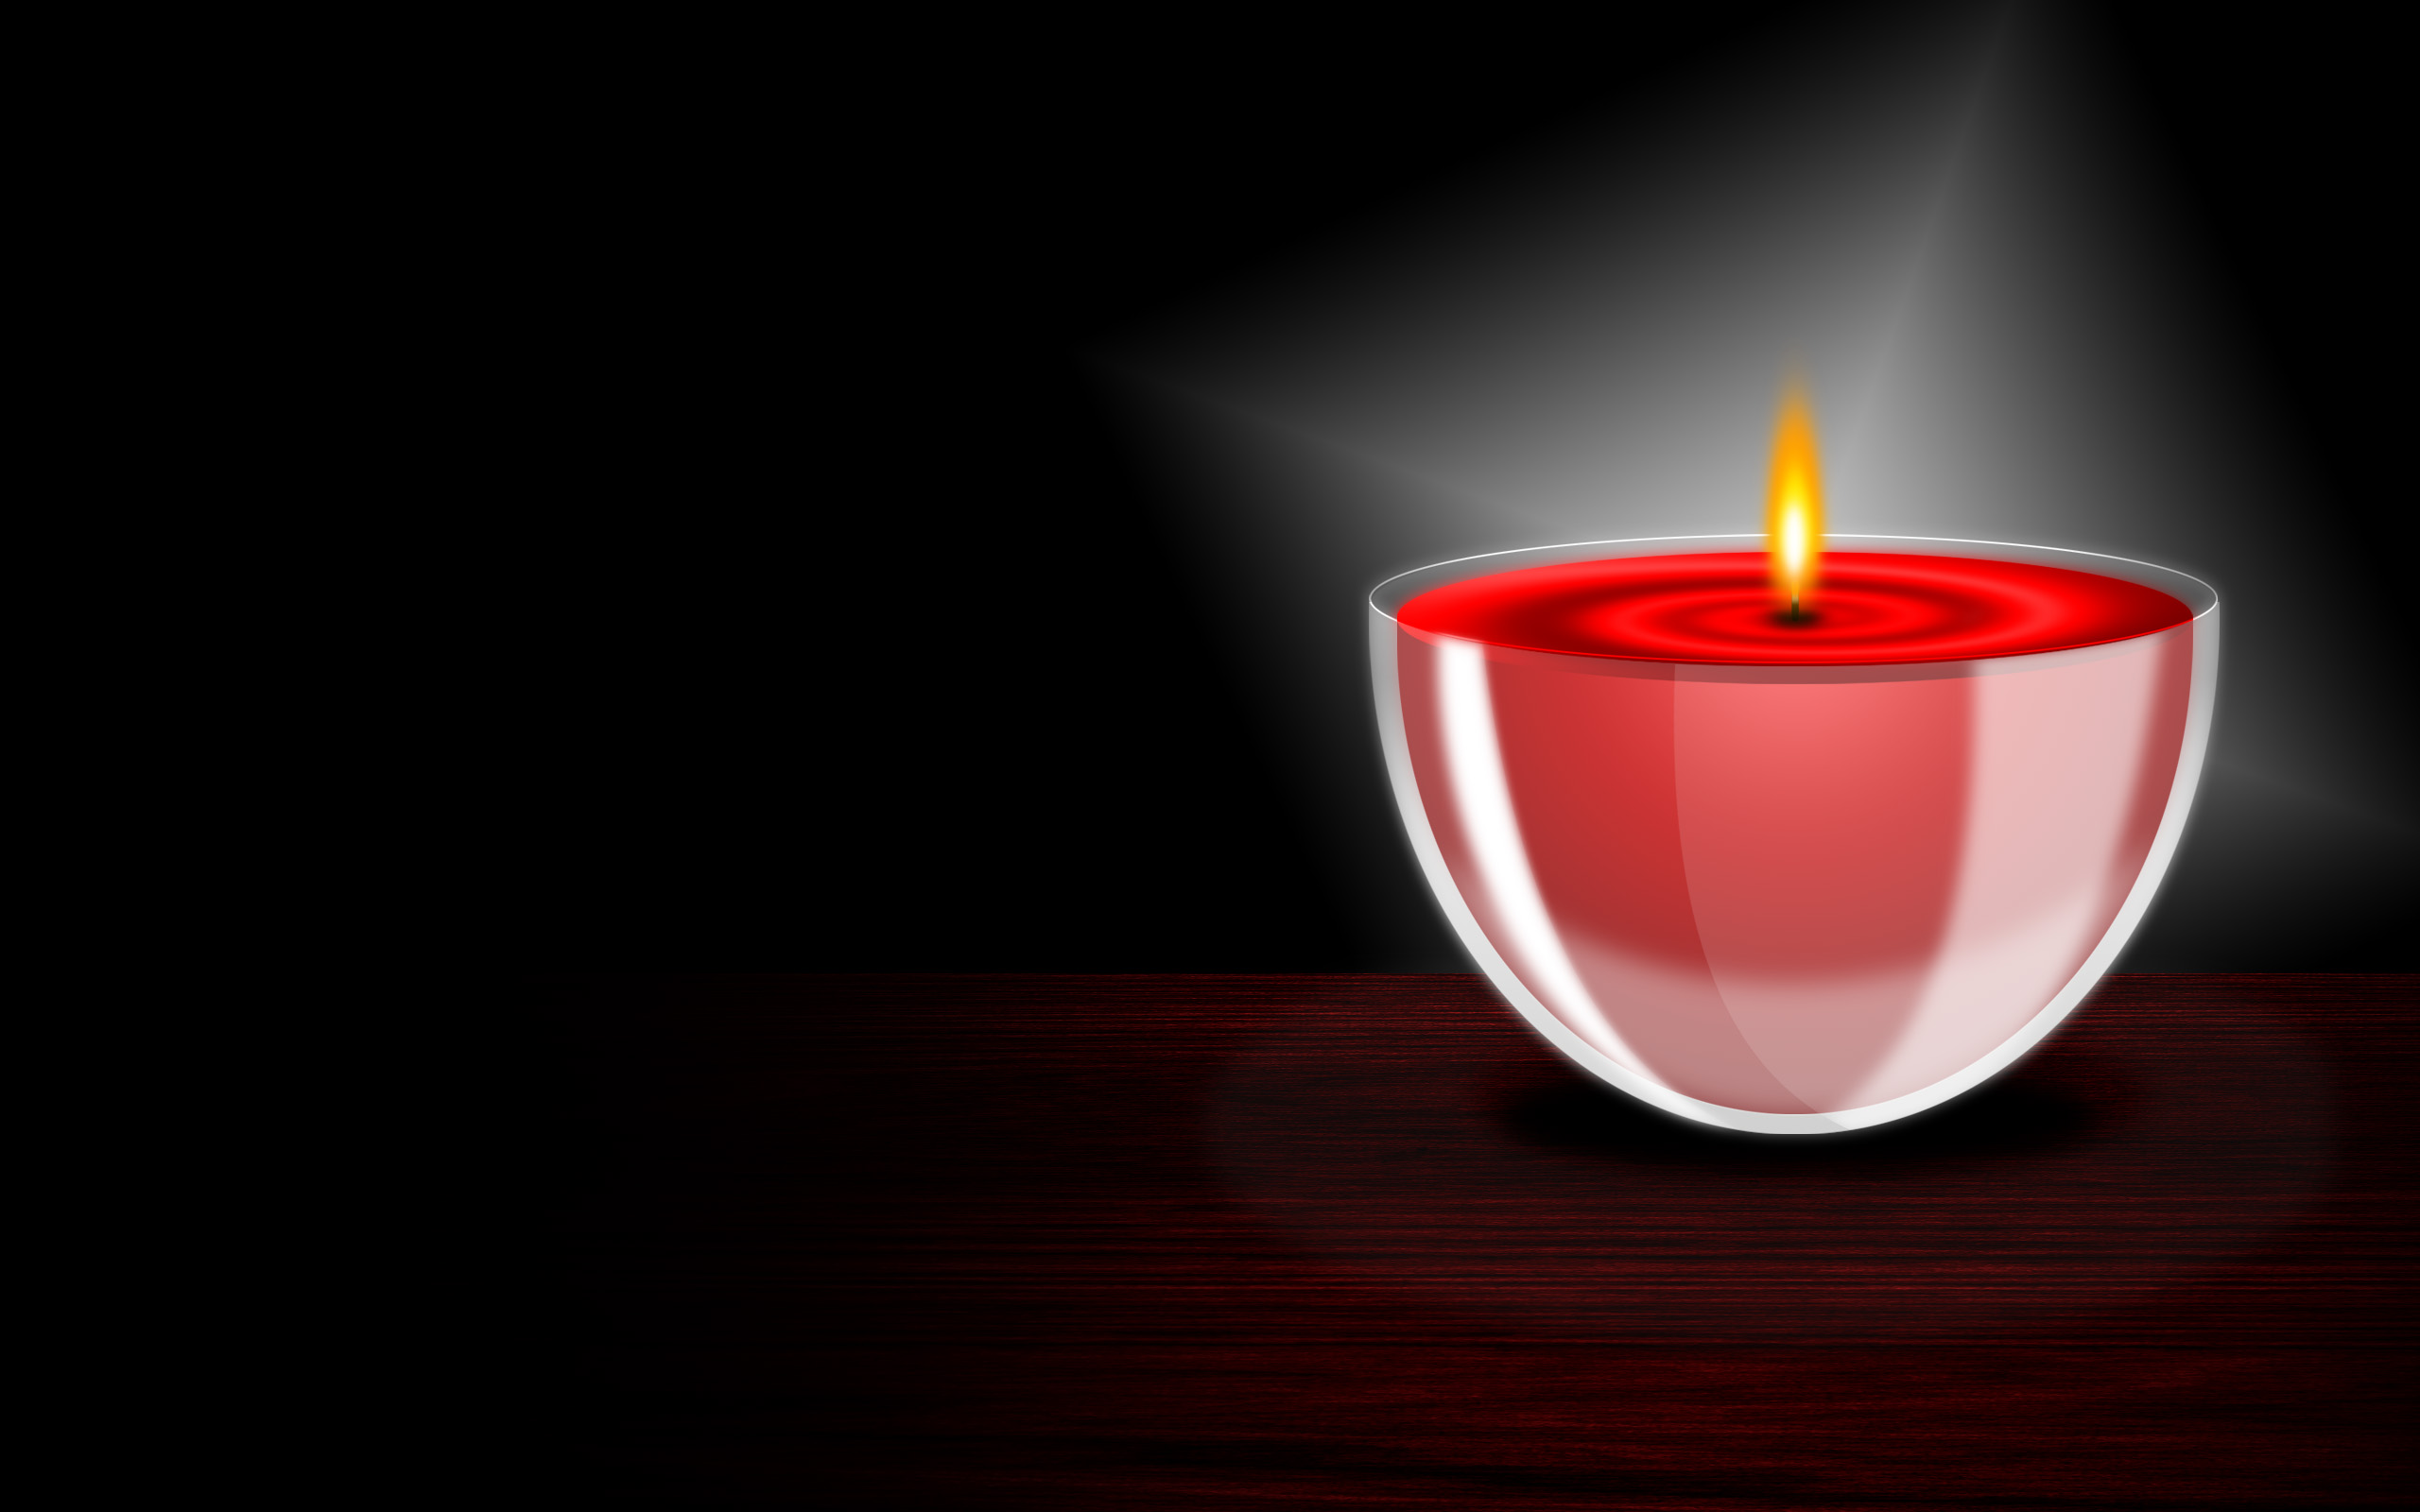 candle full hd wallpaper and background image | 2560x1600 | id:165999